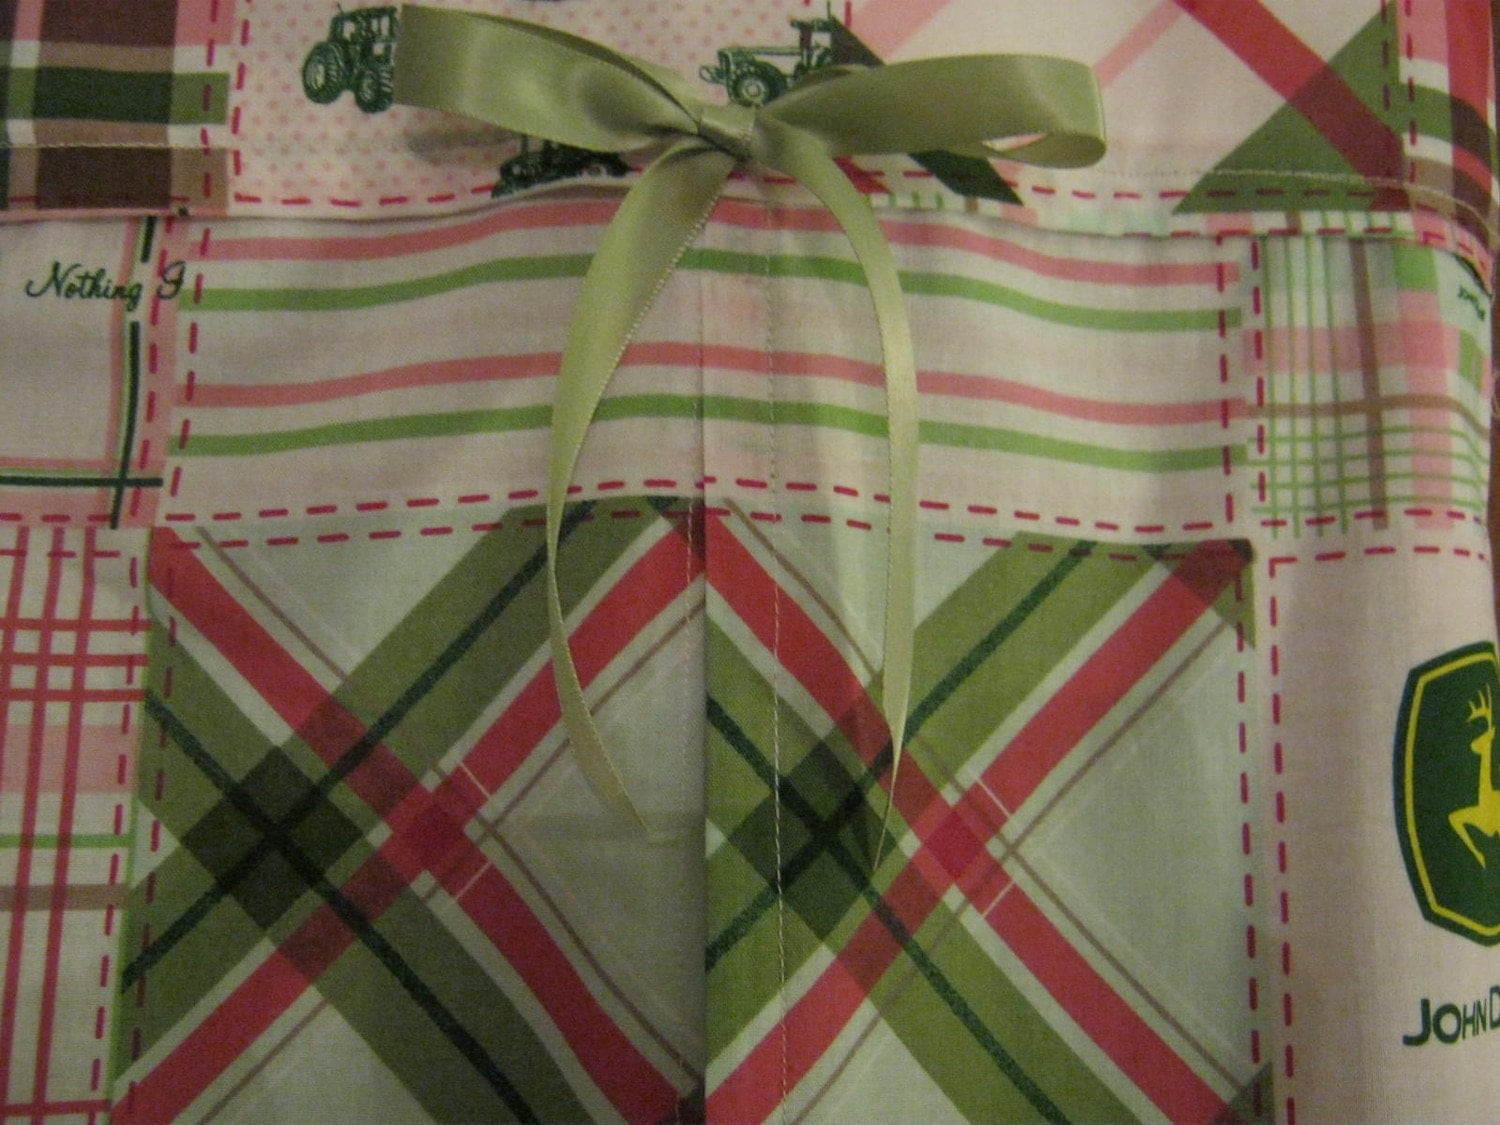 Diaper Stacker in pink and green John Deere